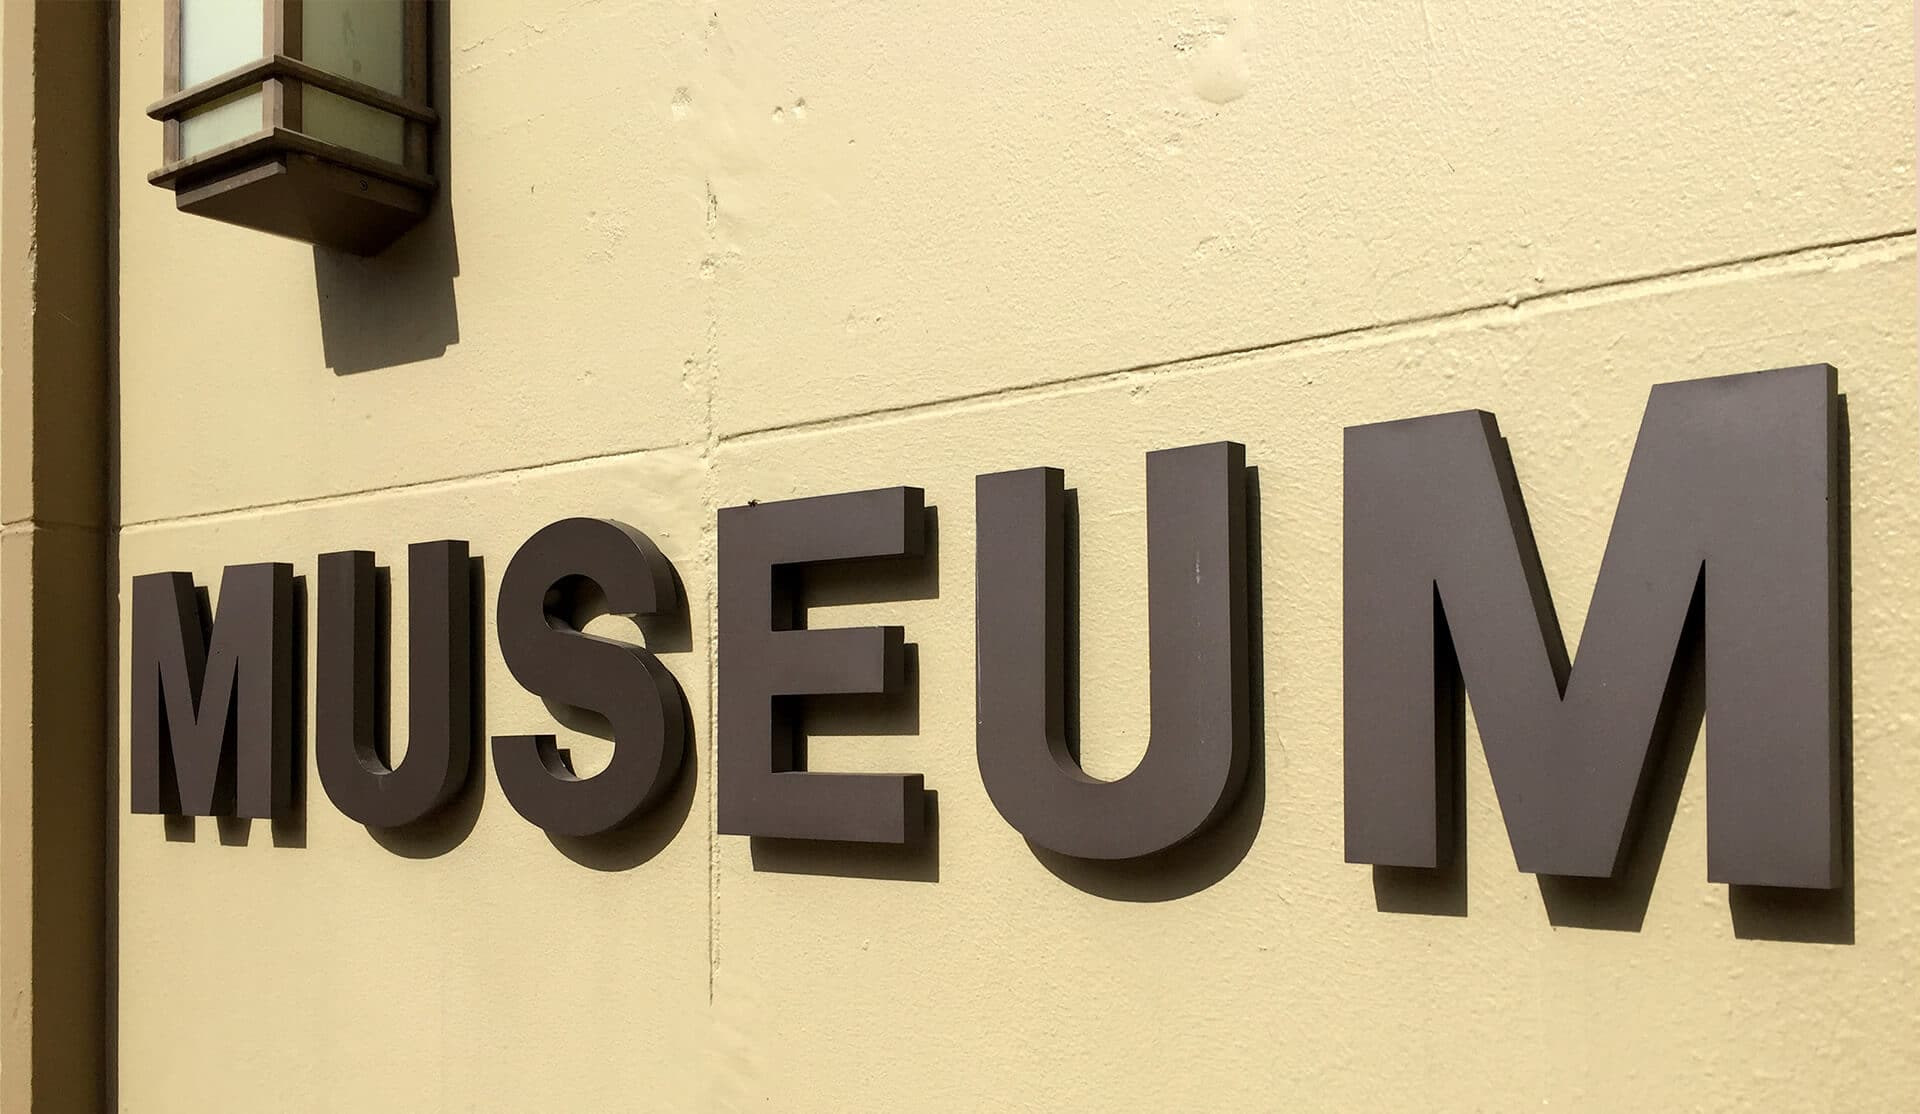 Three Museums in Three Hours Tour in Bremerton, Washington